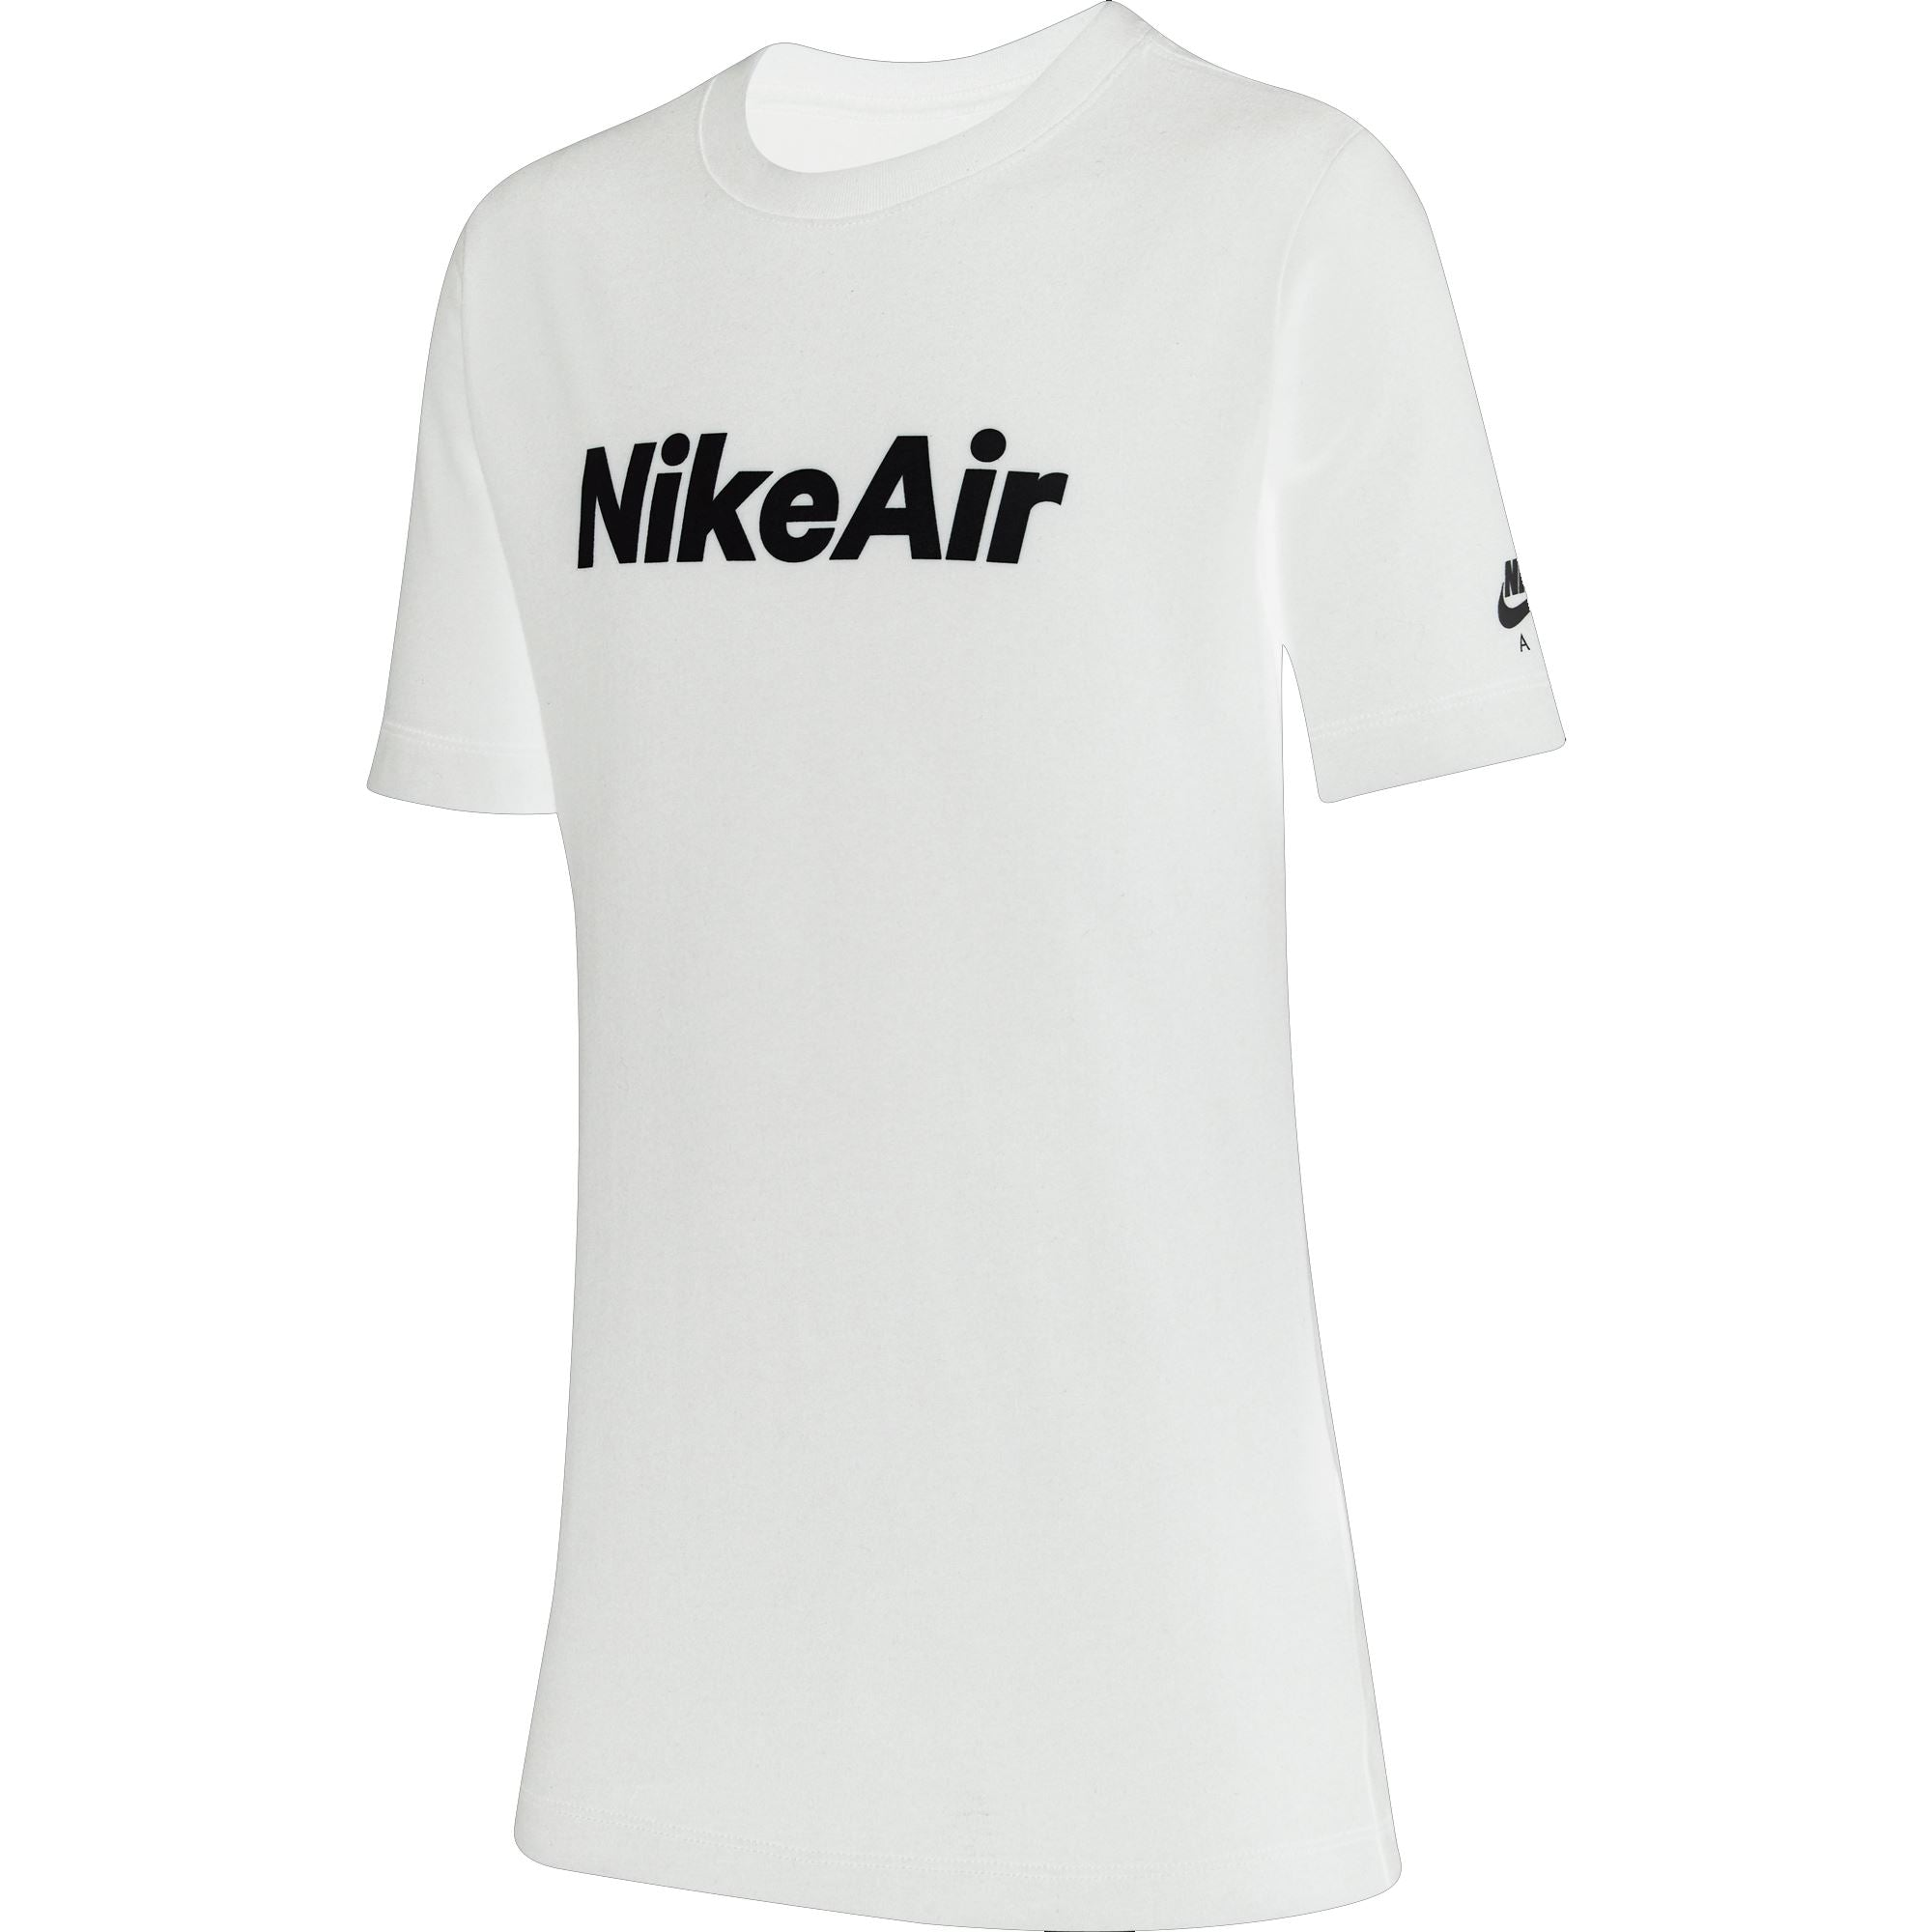 Nike Boys All About Air Tee - White SP-ApparelTees-Kids Nike